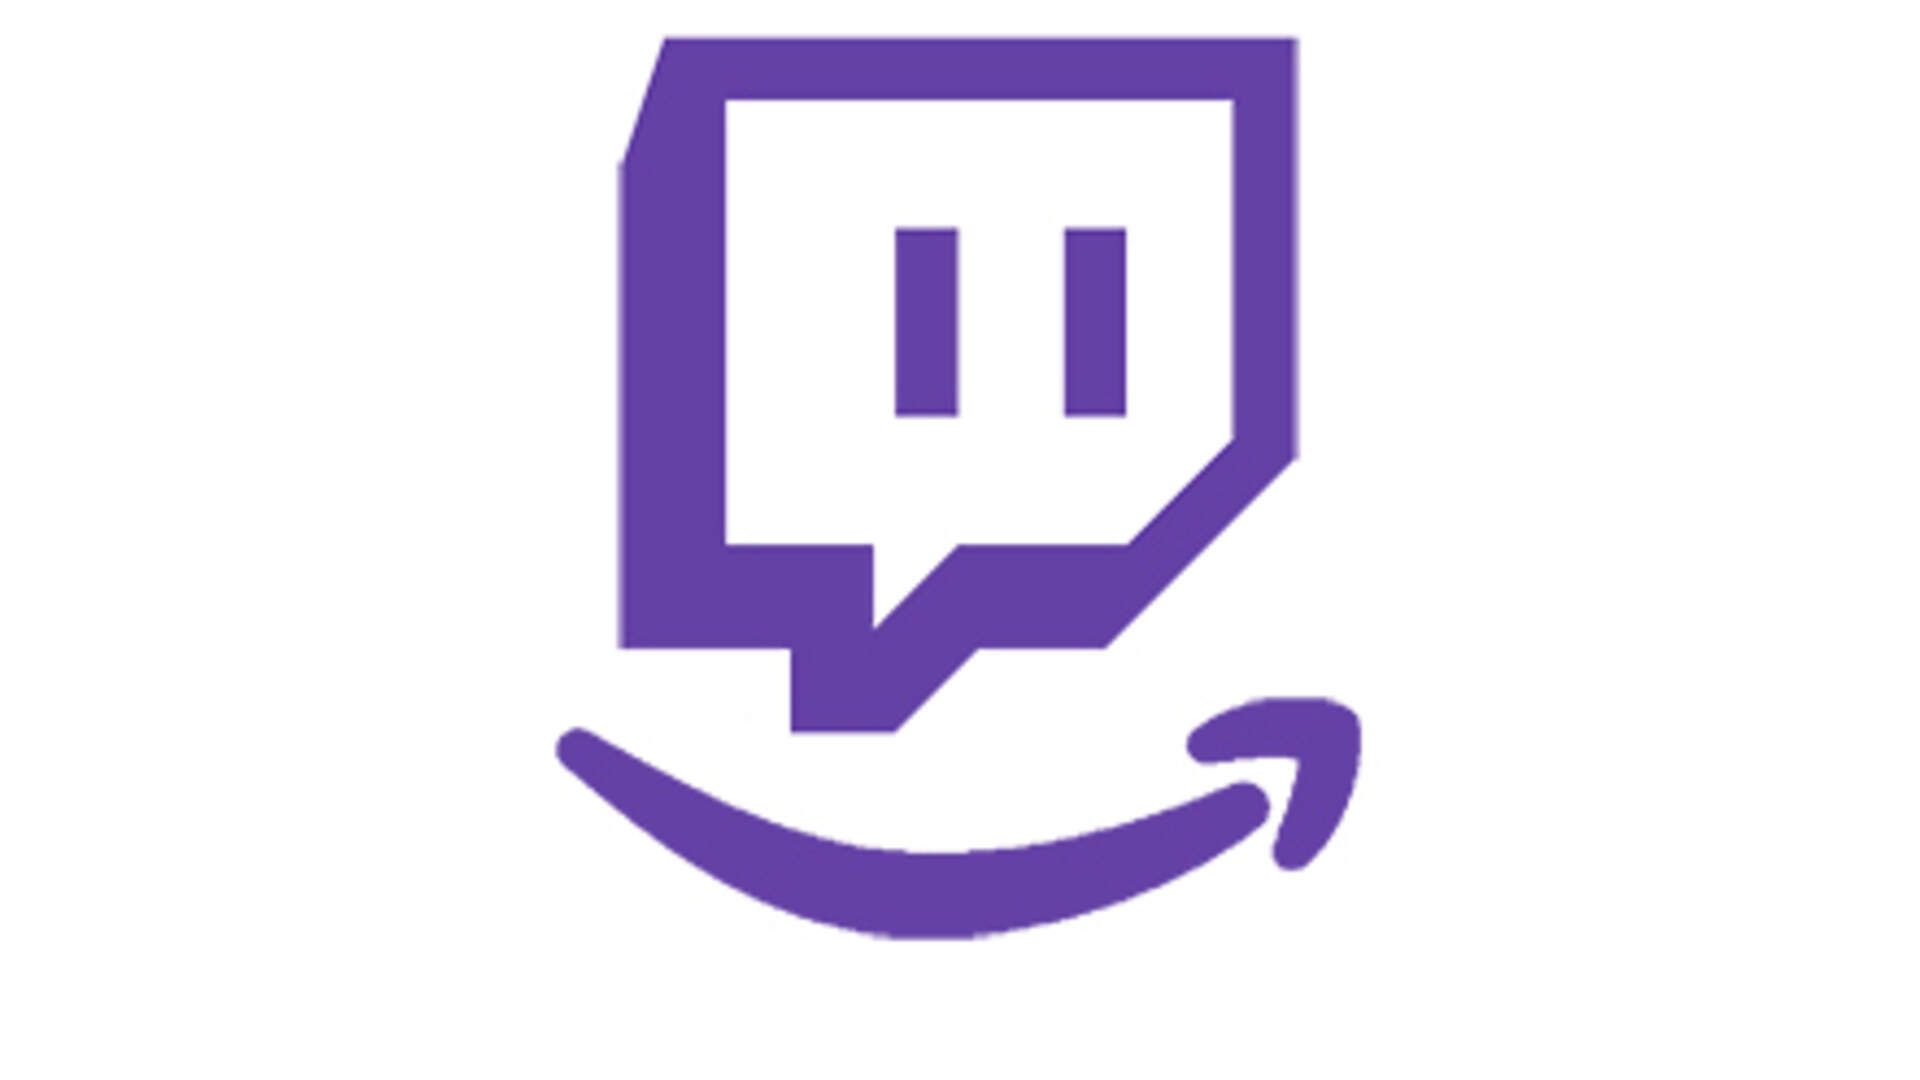 Amazon Buying Twitch Means a Bigger, Stronger Twitch